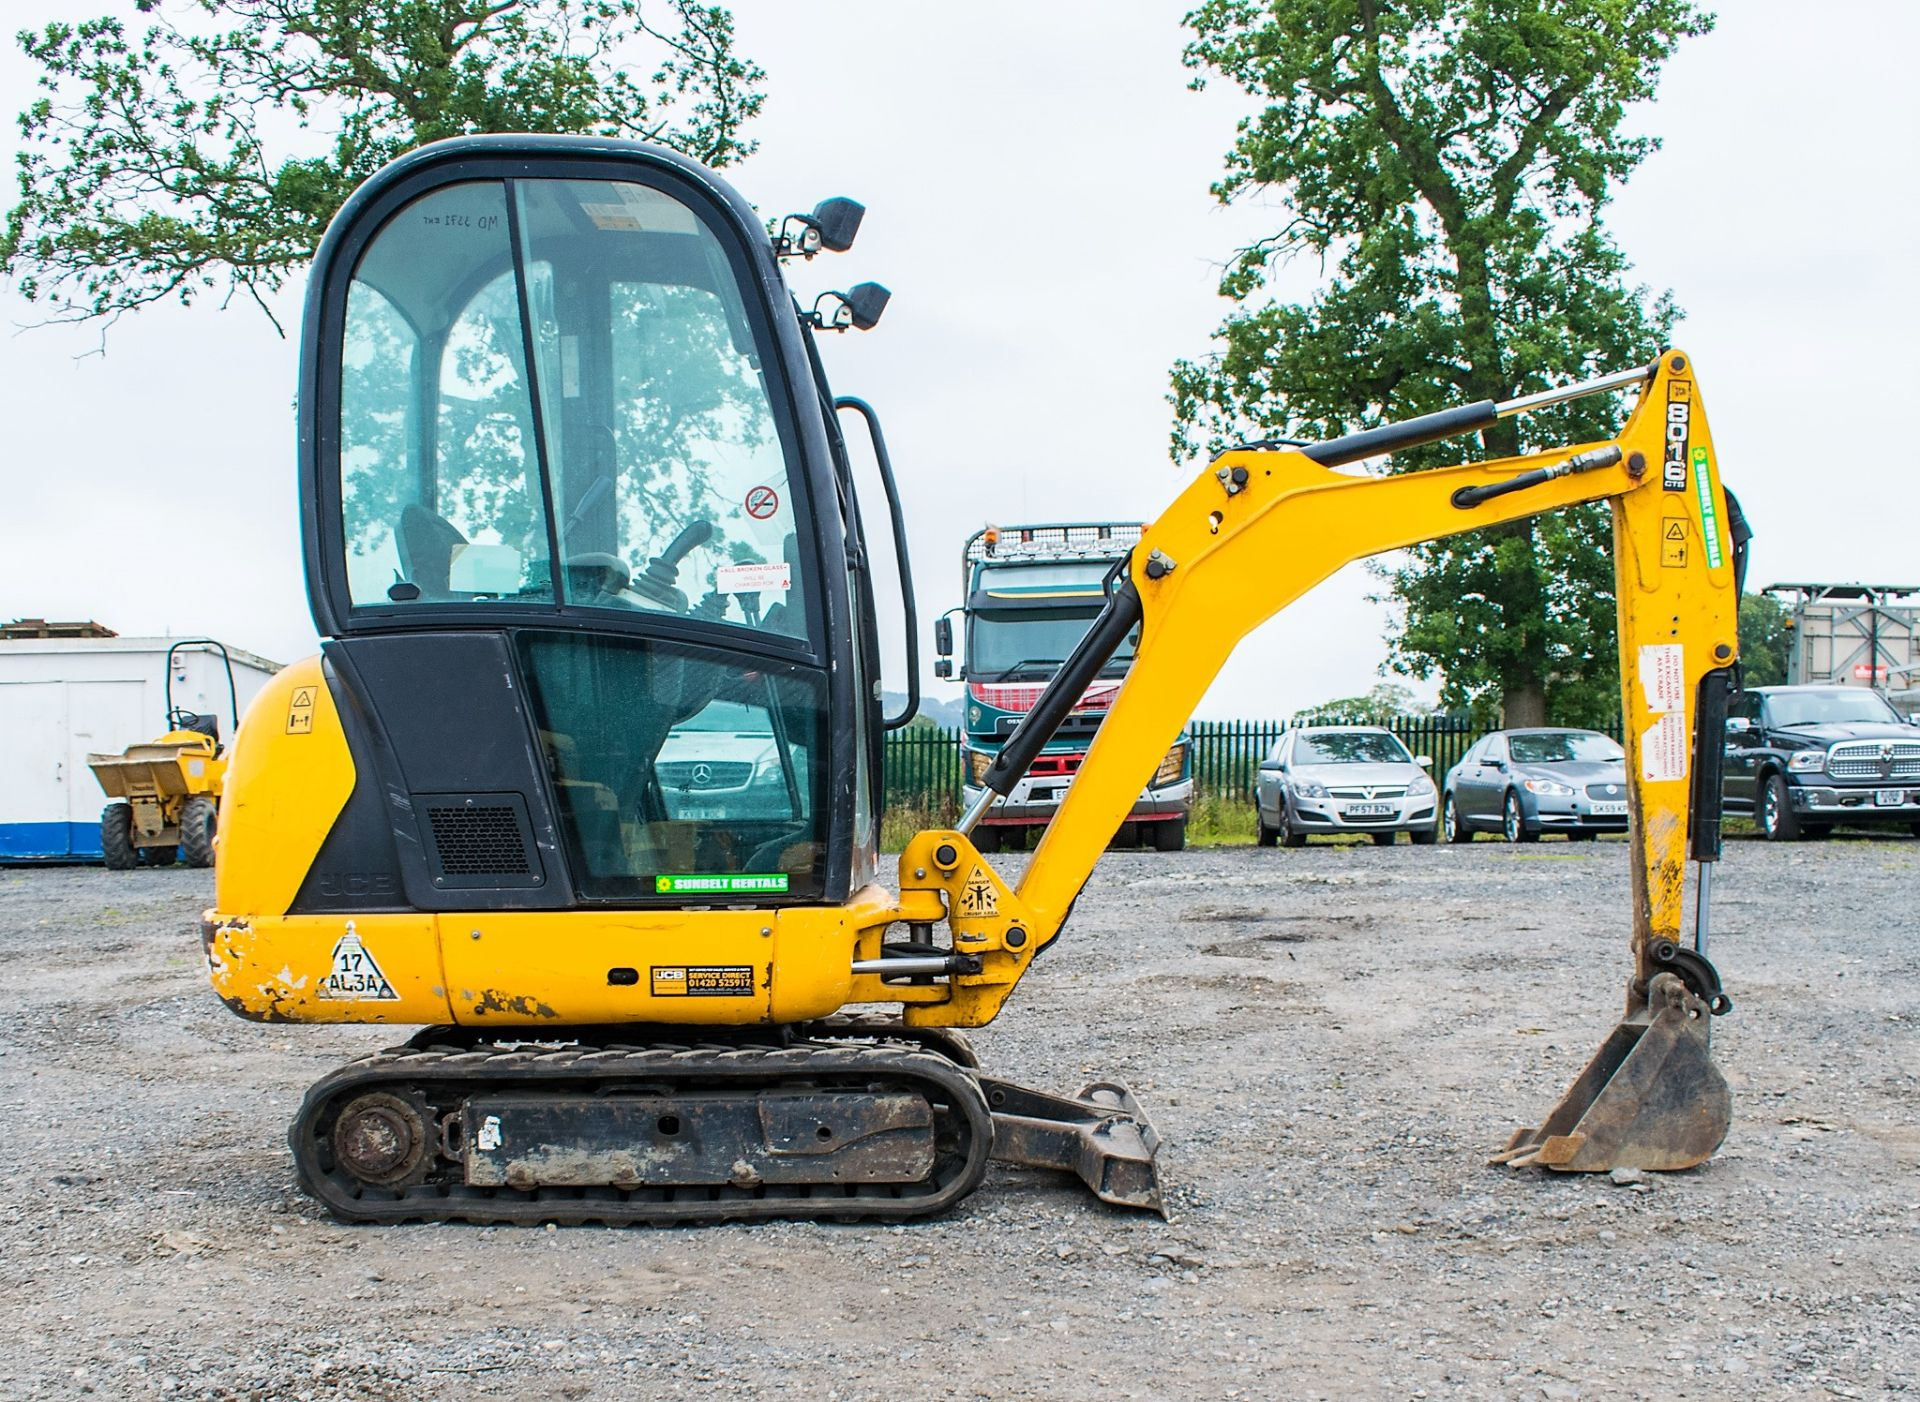 JCB 8016 1.6 tonne rubber tracked excavator  Year: 2015 S/N: 1733 Recorded Hours: 1861 A669405 - Image 7 of 20